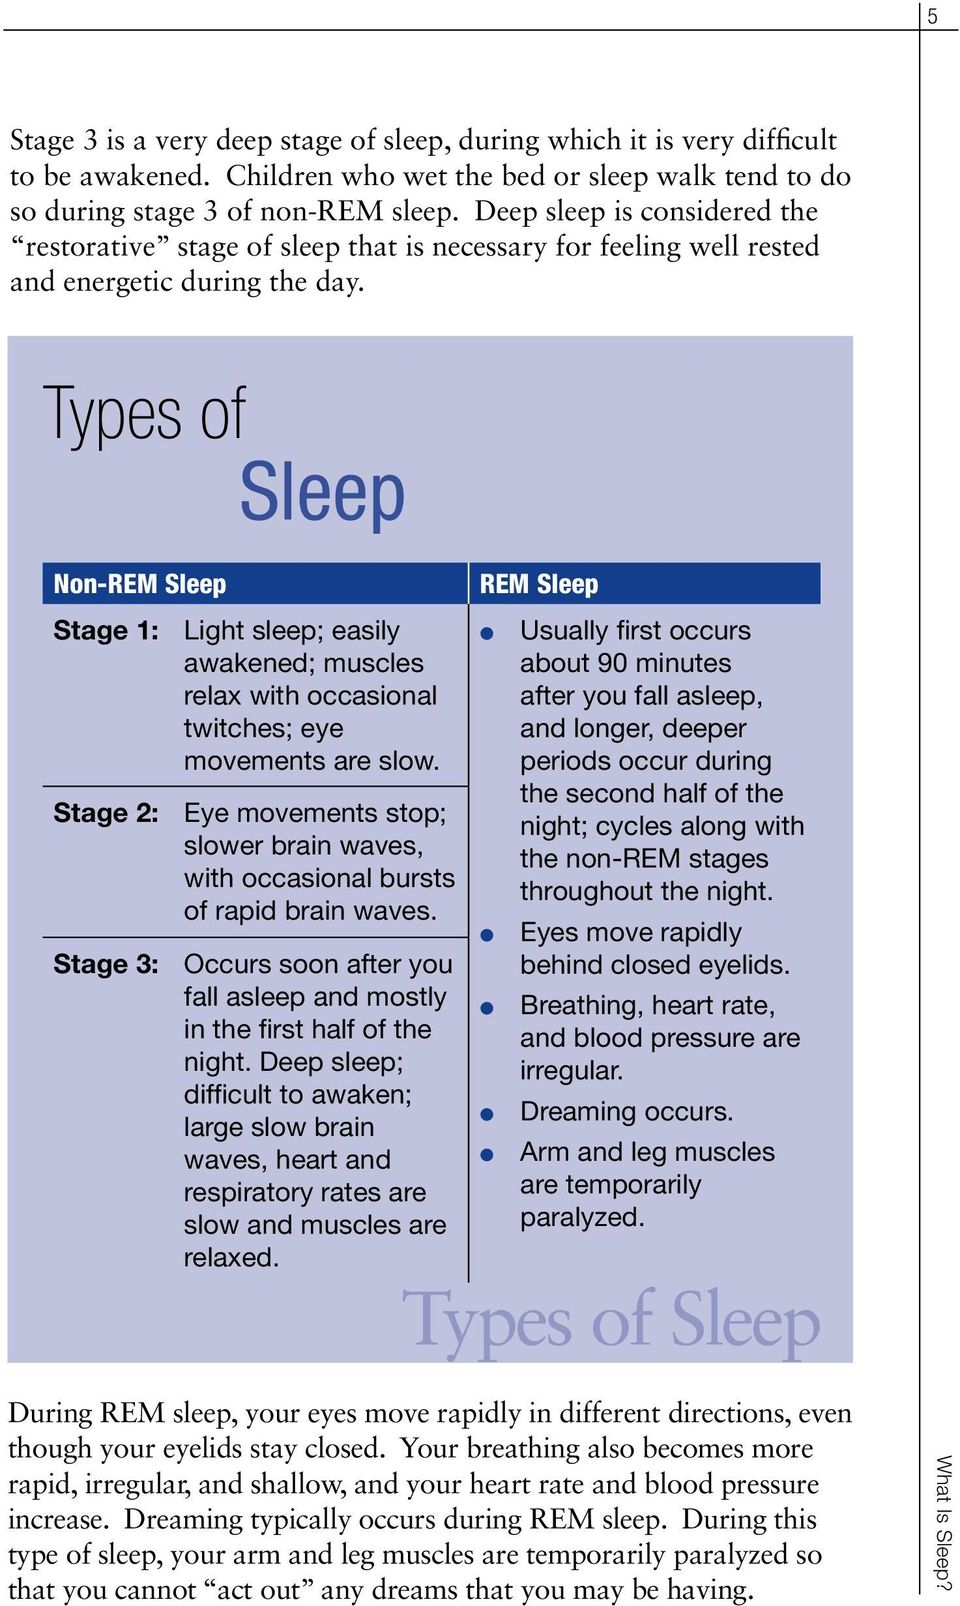 Types of Seep Non-REM Seep Stage 1: Light seep; easiy awakened; musces reax with occasiona twitches; eye movements are sow.